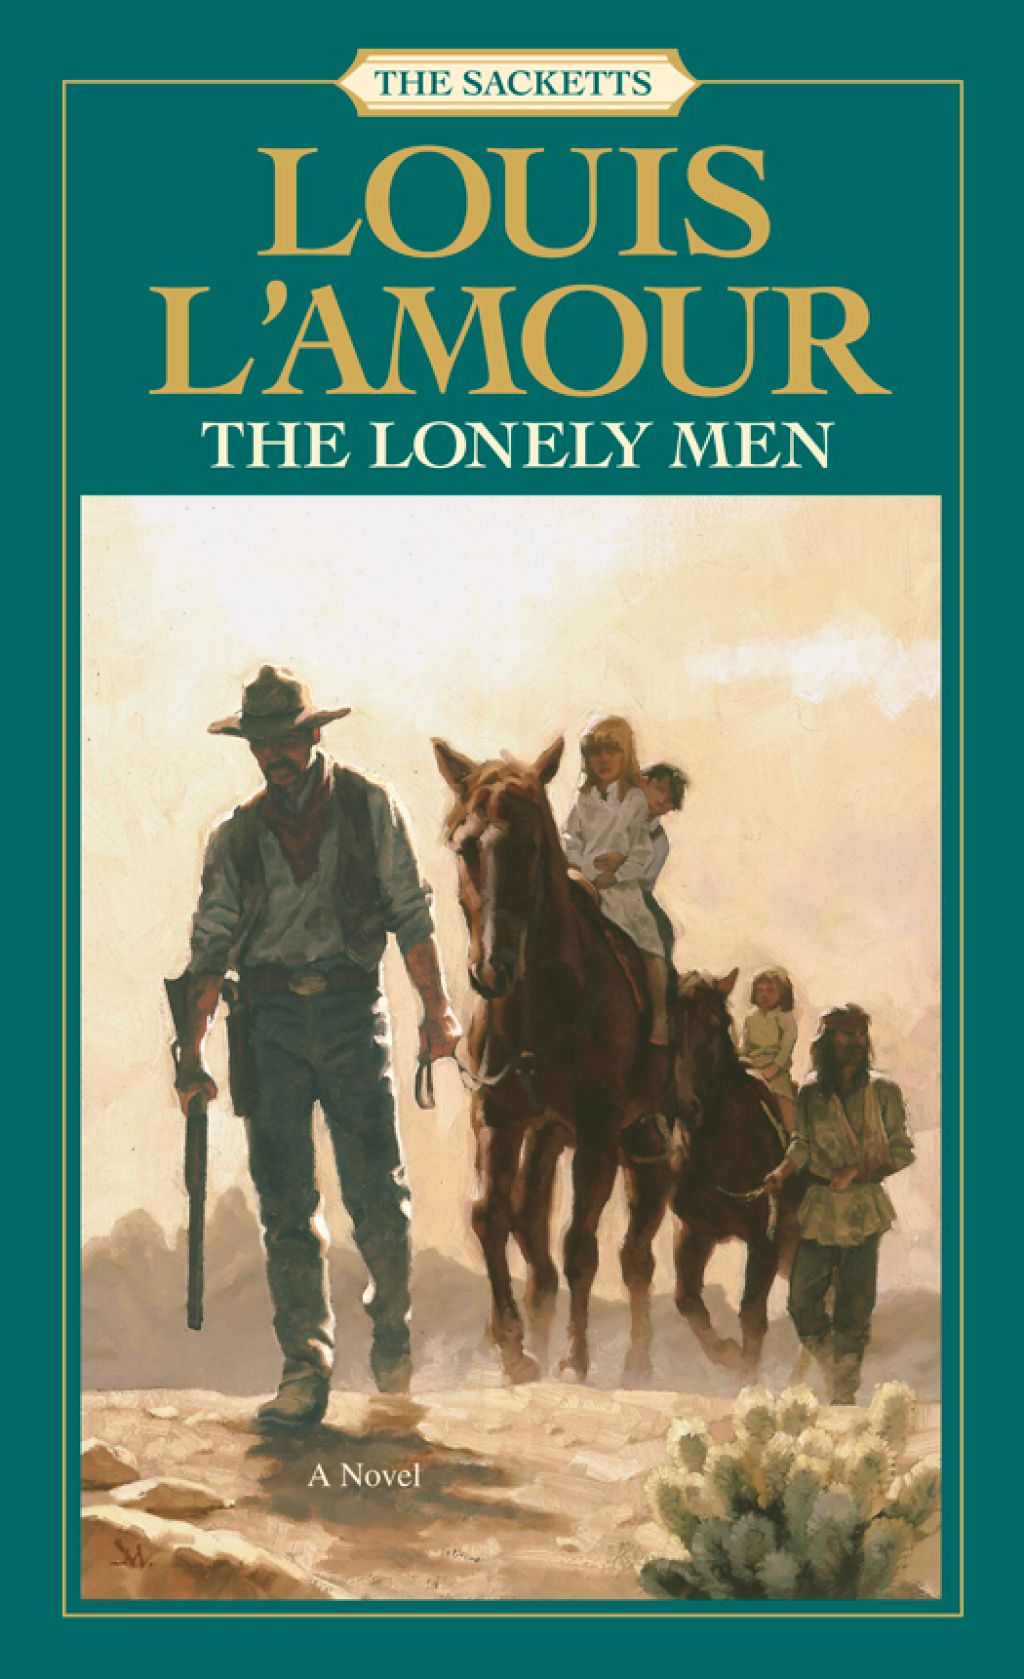 The lonely men ebook in 2019 louis l amour books